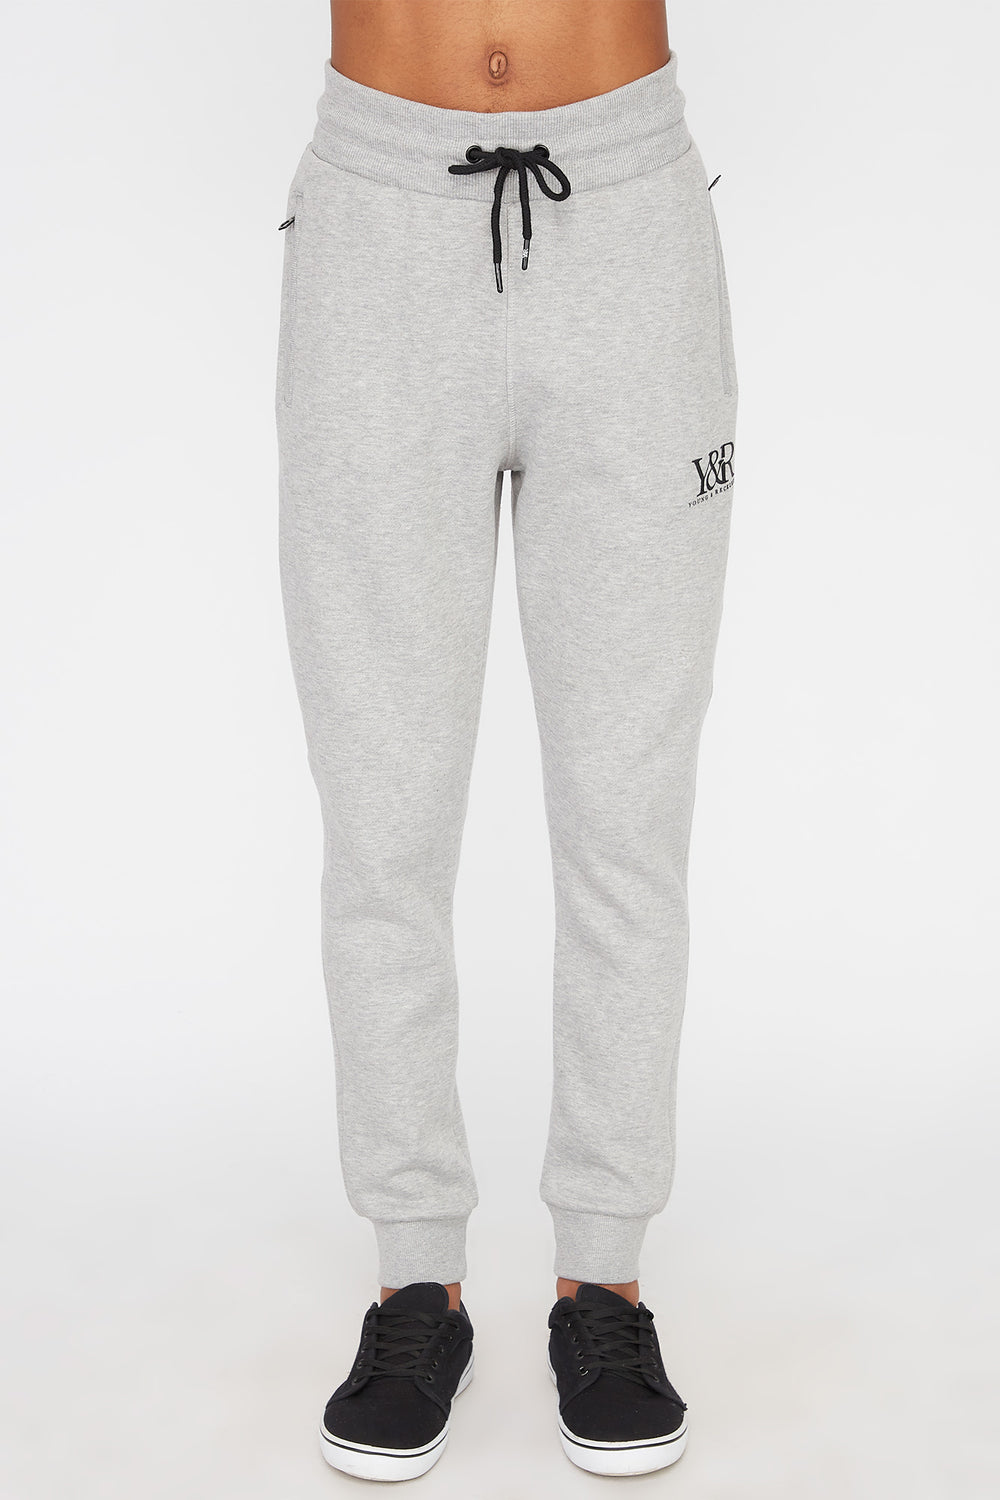 Young & Reckless Mens Neon Accent Joggers Heather Grey